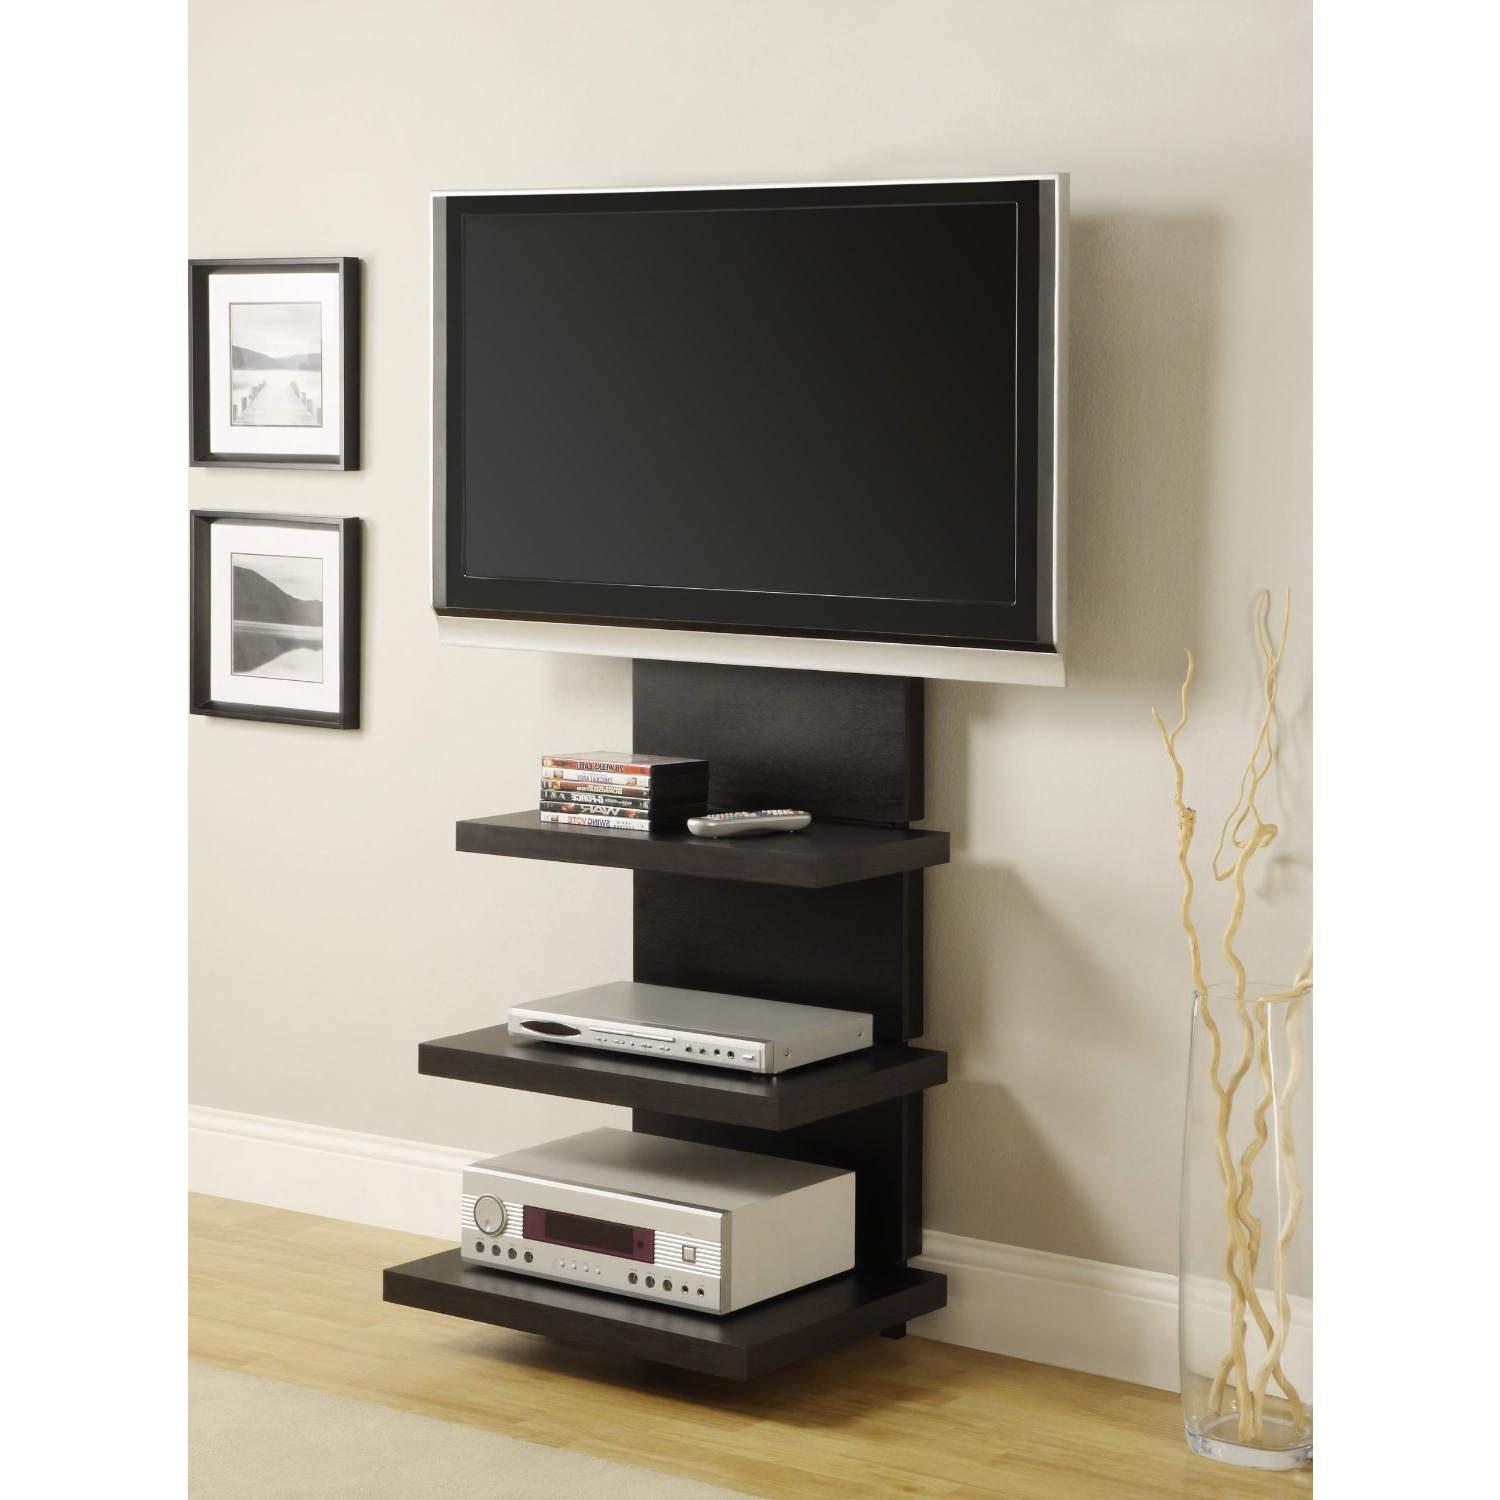 Preferred Bedroom Television Cabinets And Stands Small Corner Tv Unit Tall Tv Inside Narrow Tv Stands For Flat Screens (View 10 of 20)